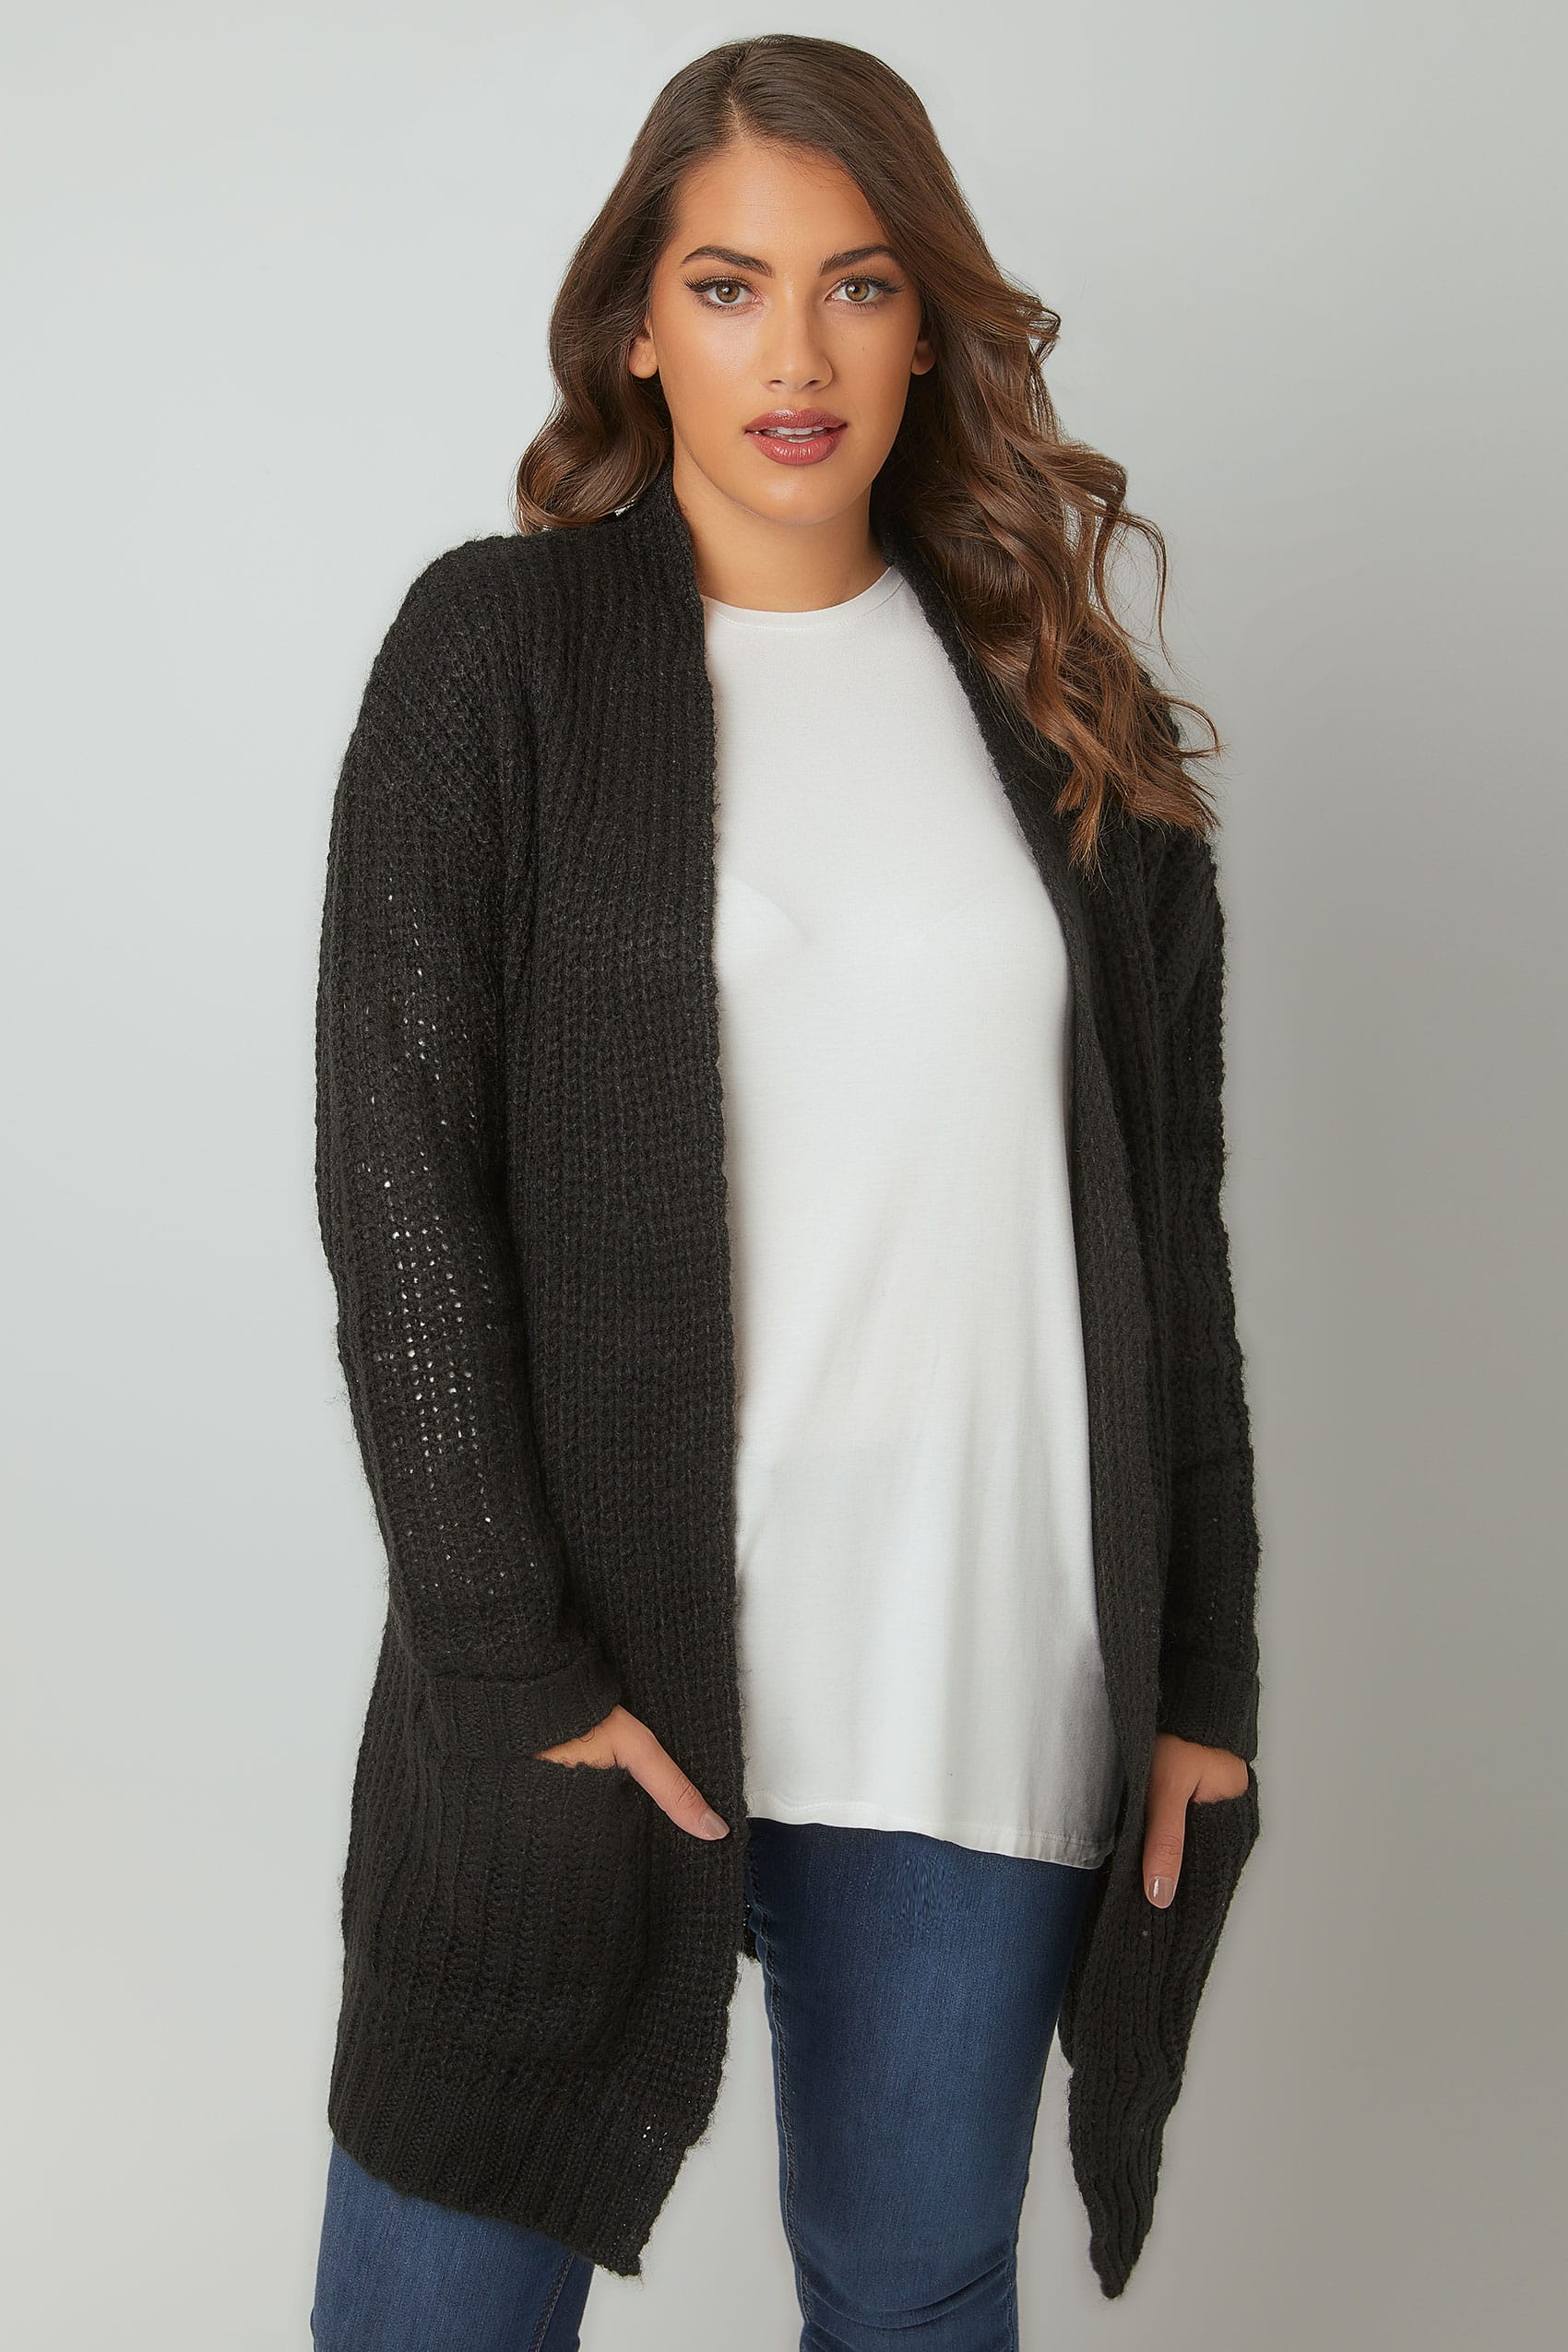 Plus Size Knitted Cardigans | Ladies Knitwear | Yours Clothing